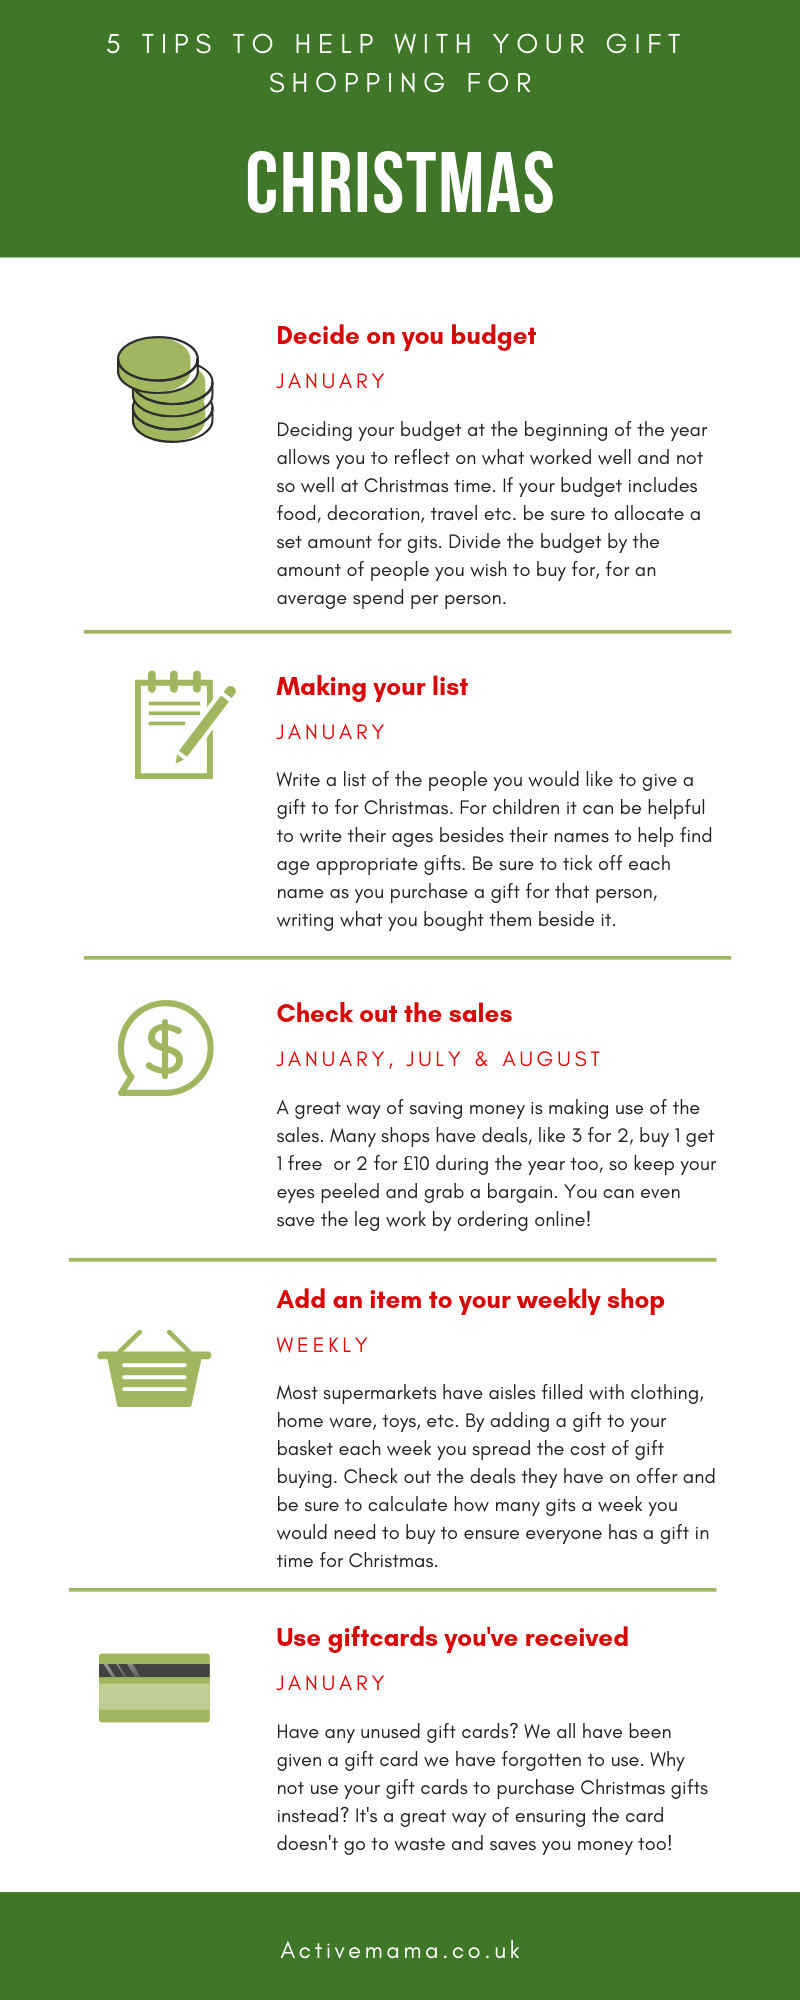 Christmas Shopping Tips Info-graphic